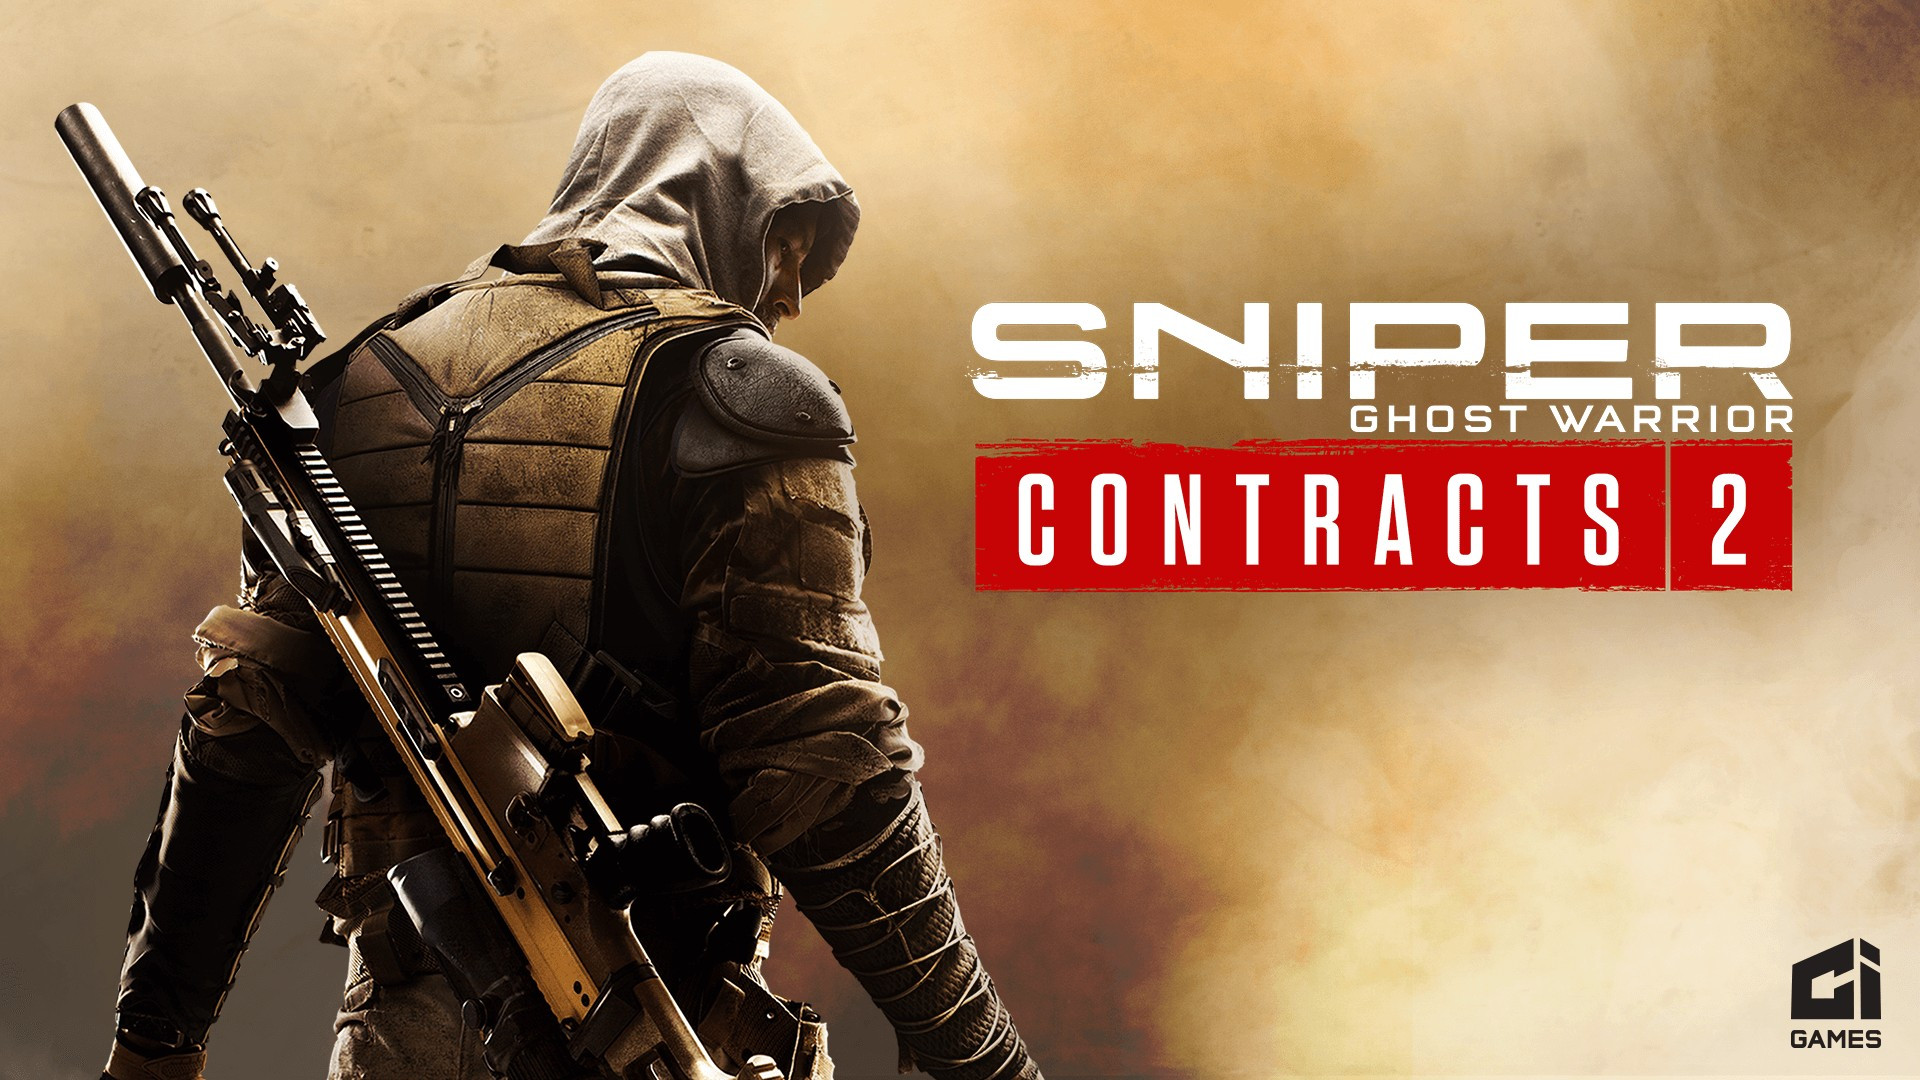 Sniper Ghost Warrior Contracts 2 Guide - Best Upgrades, Gadgets and Weapons